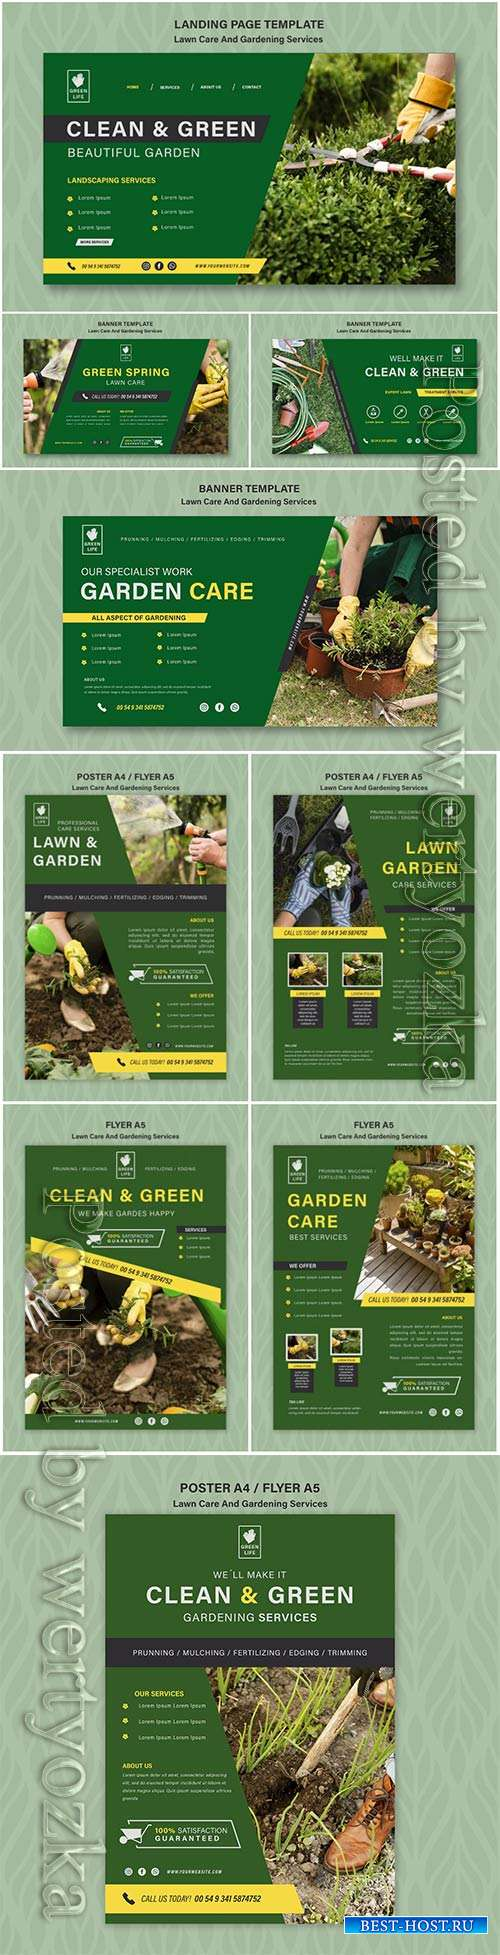 Lawn care concept banner template